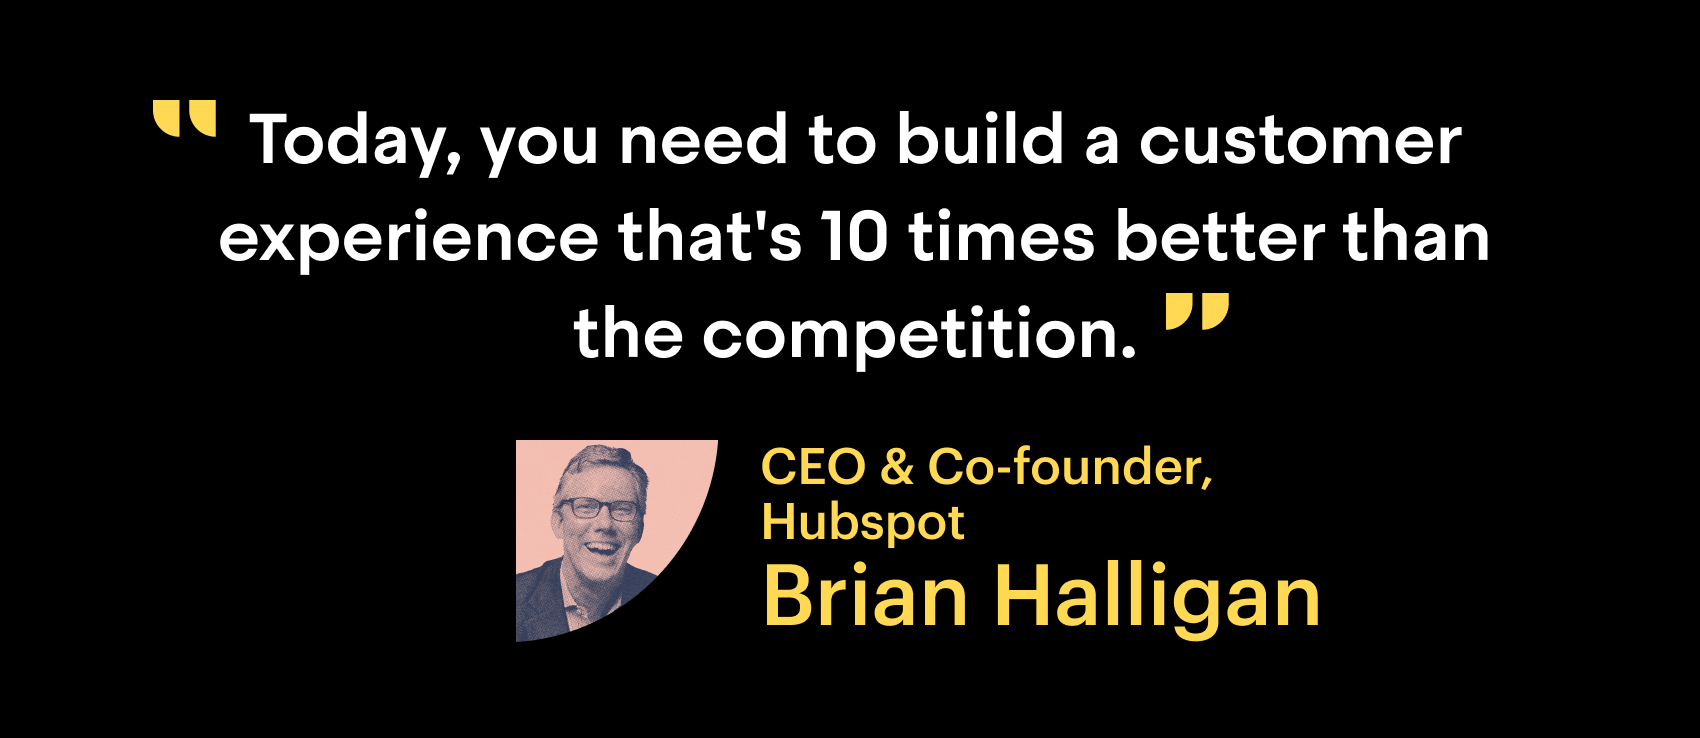 """Today you need to build a customer experience that's 10 times better than the competition."" CEO & Co-founder, Hubspot. Brian Halligan."